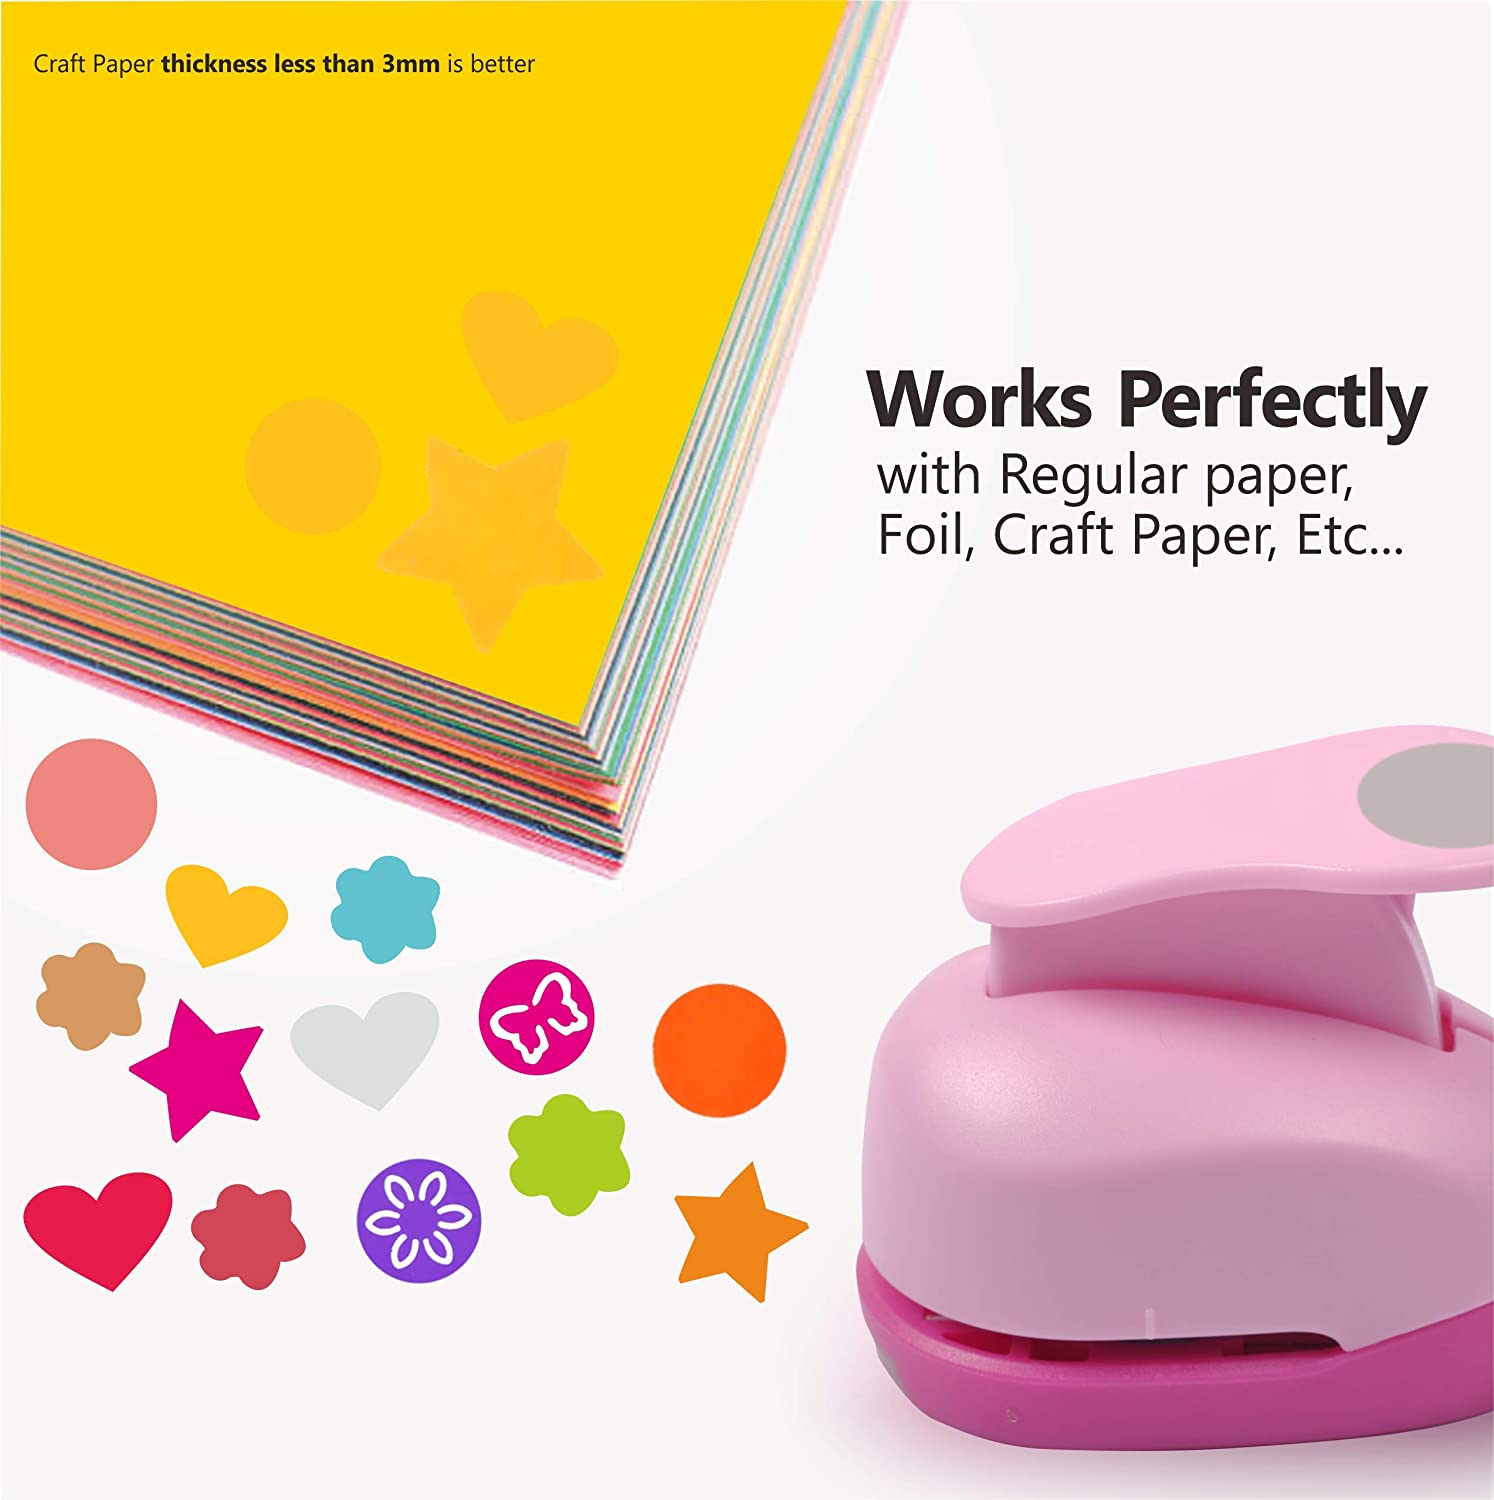 6 Pcs Hole Punch Shapes Lever Punch Includes Circle Heart Star Flower Butterfly Scallop for Kids Adults Pink Craft Punches for Scrapbooking Festival Paper Greeting Card 1 inch Paper Puncher Set